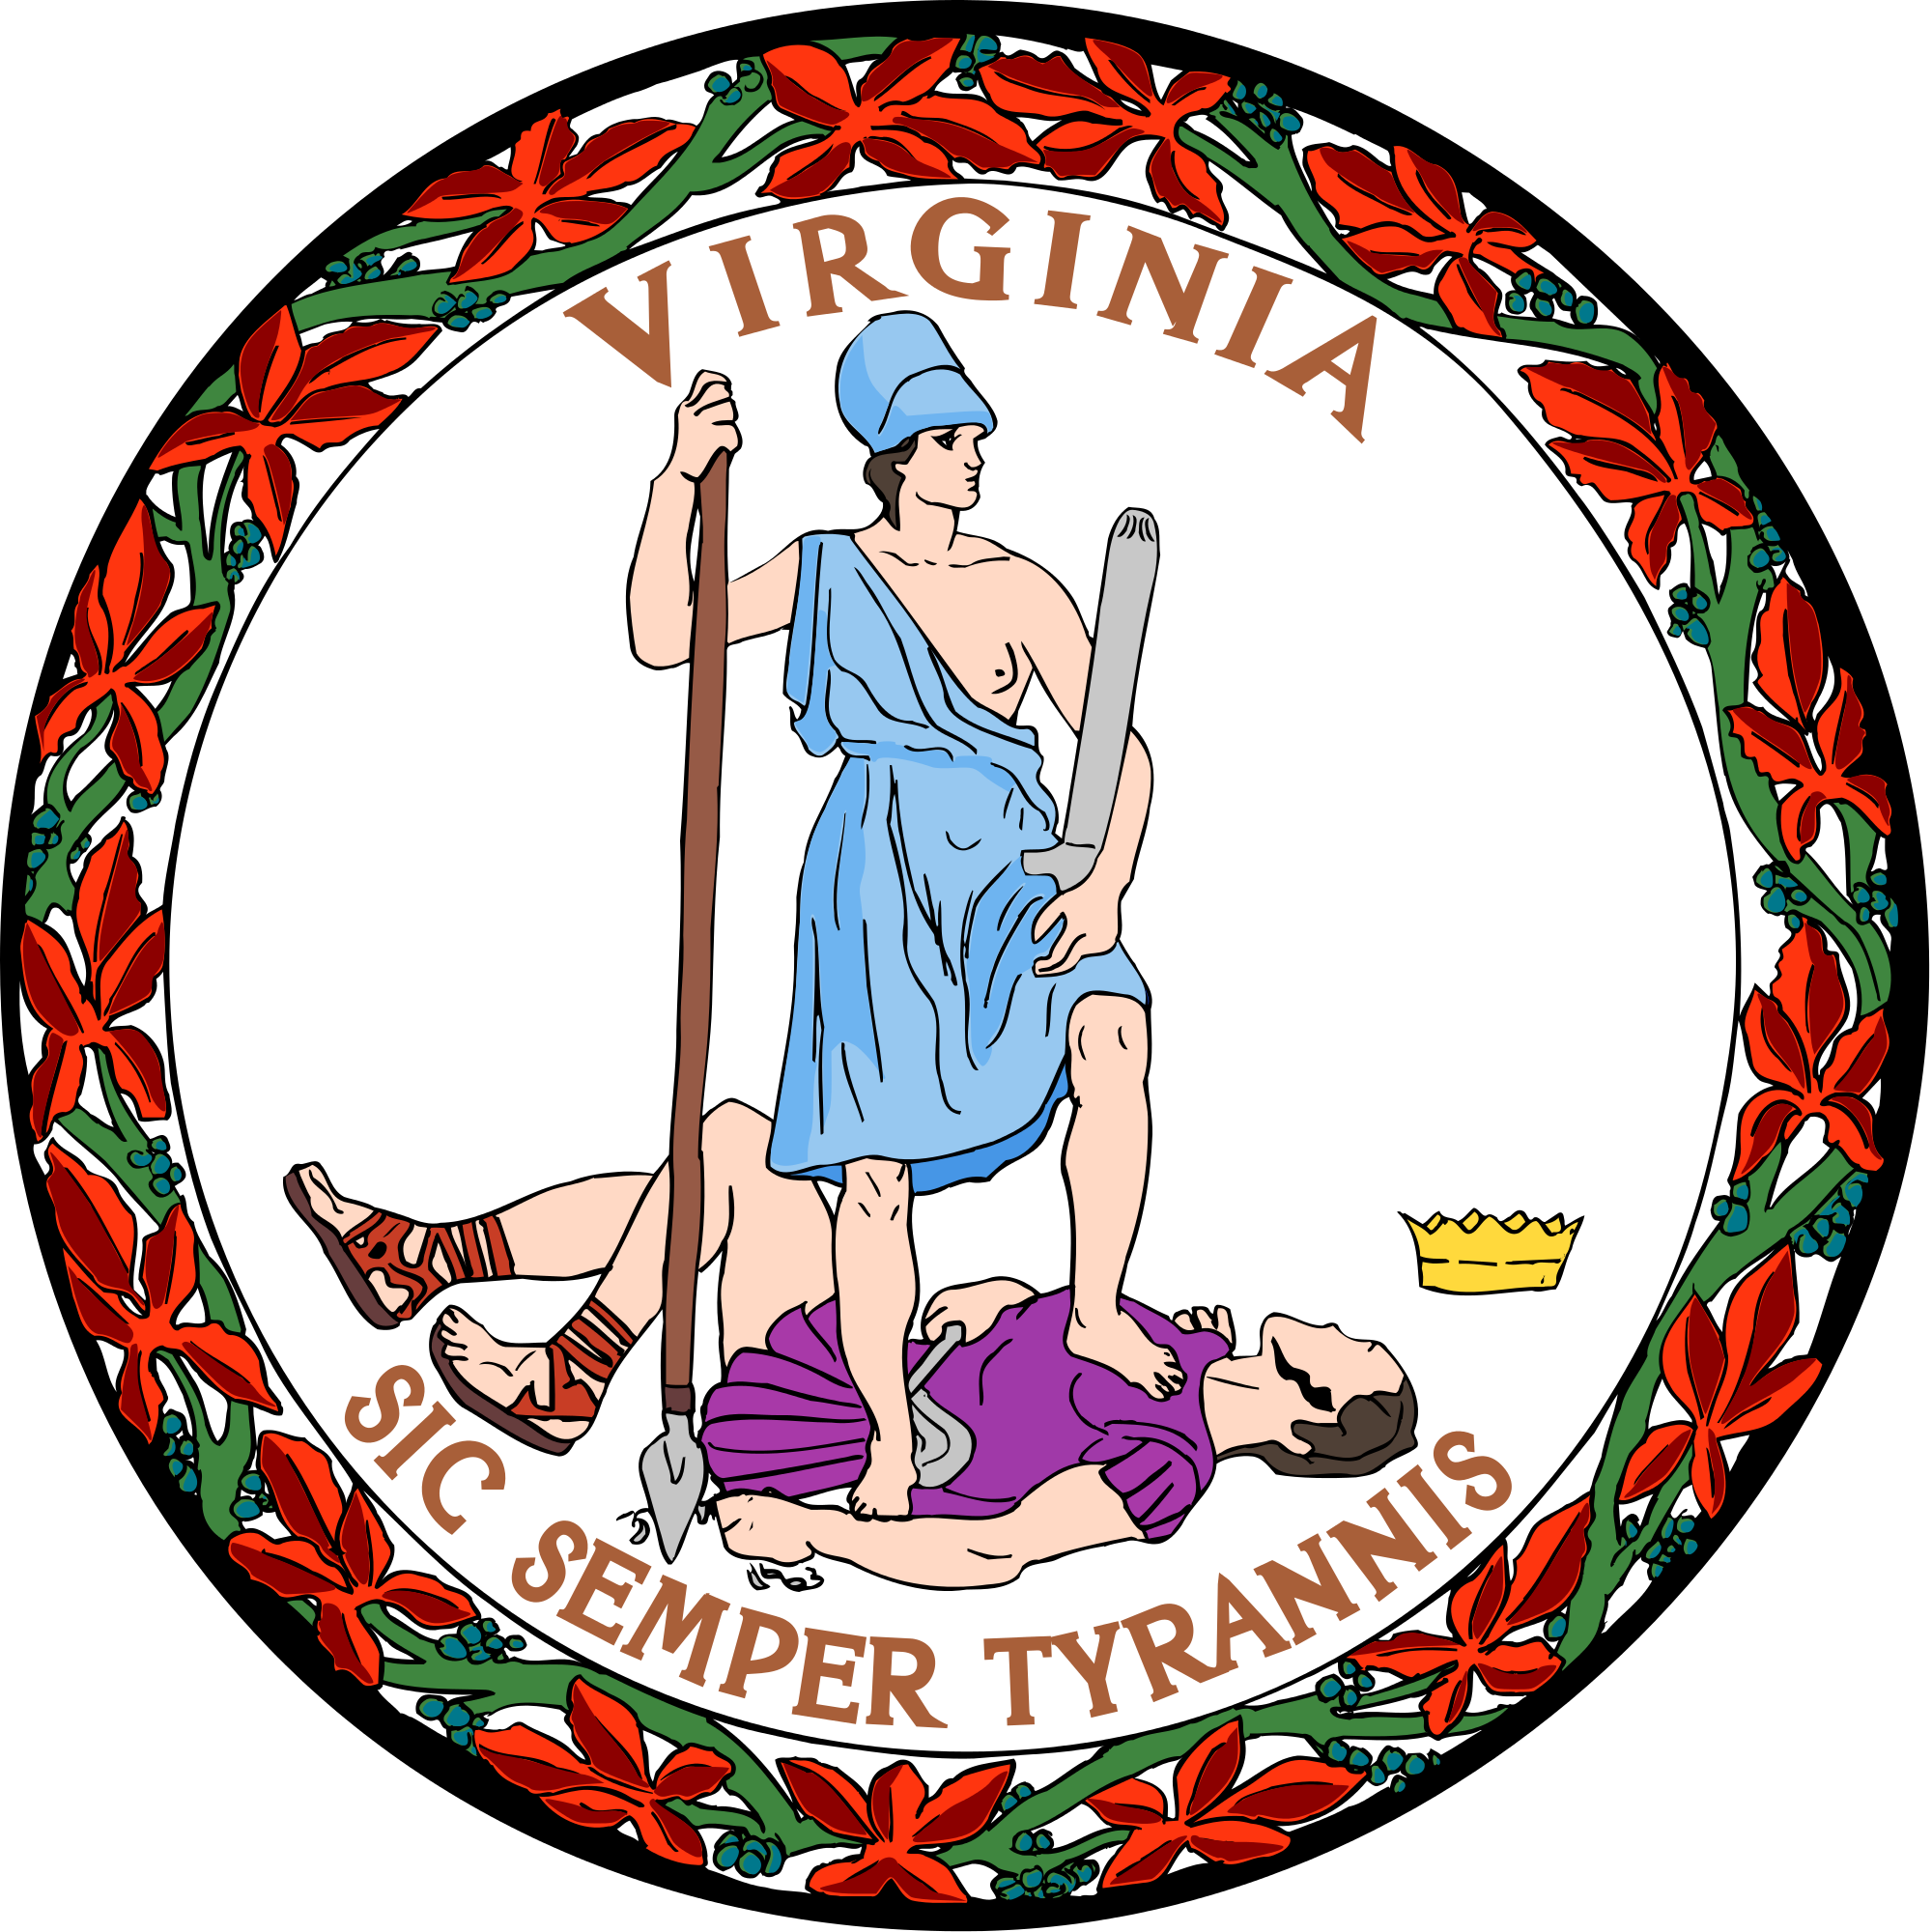 Sic semper tyrannis the. Voting clipart malfeasance